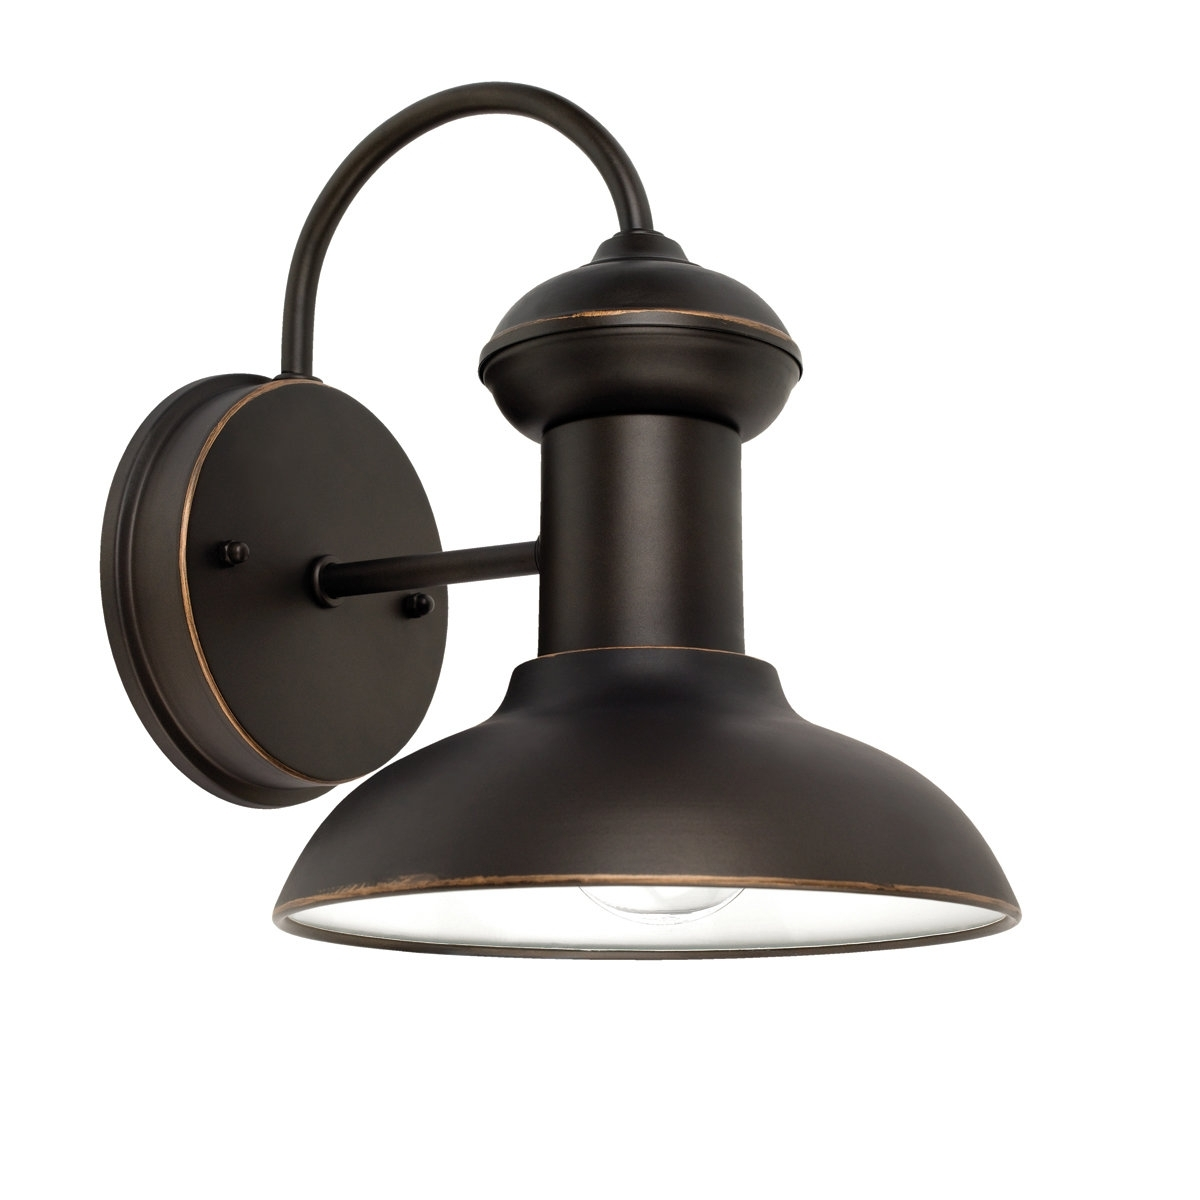 Most Recent Battery Operated Outdoor Lights At Wayfair Throughout Outdoor Wall Lighting & Barn Lights You'll Love (View 3 of 20)